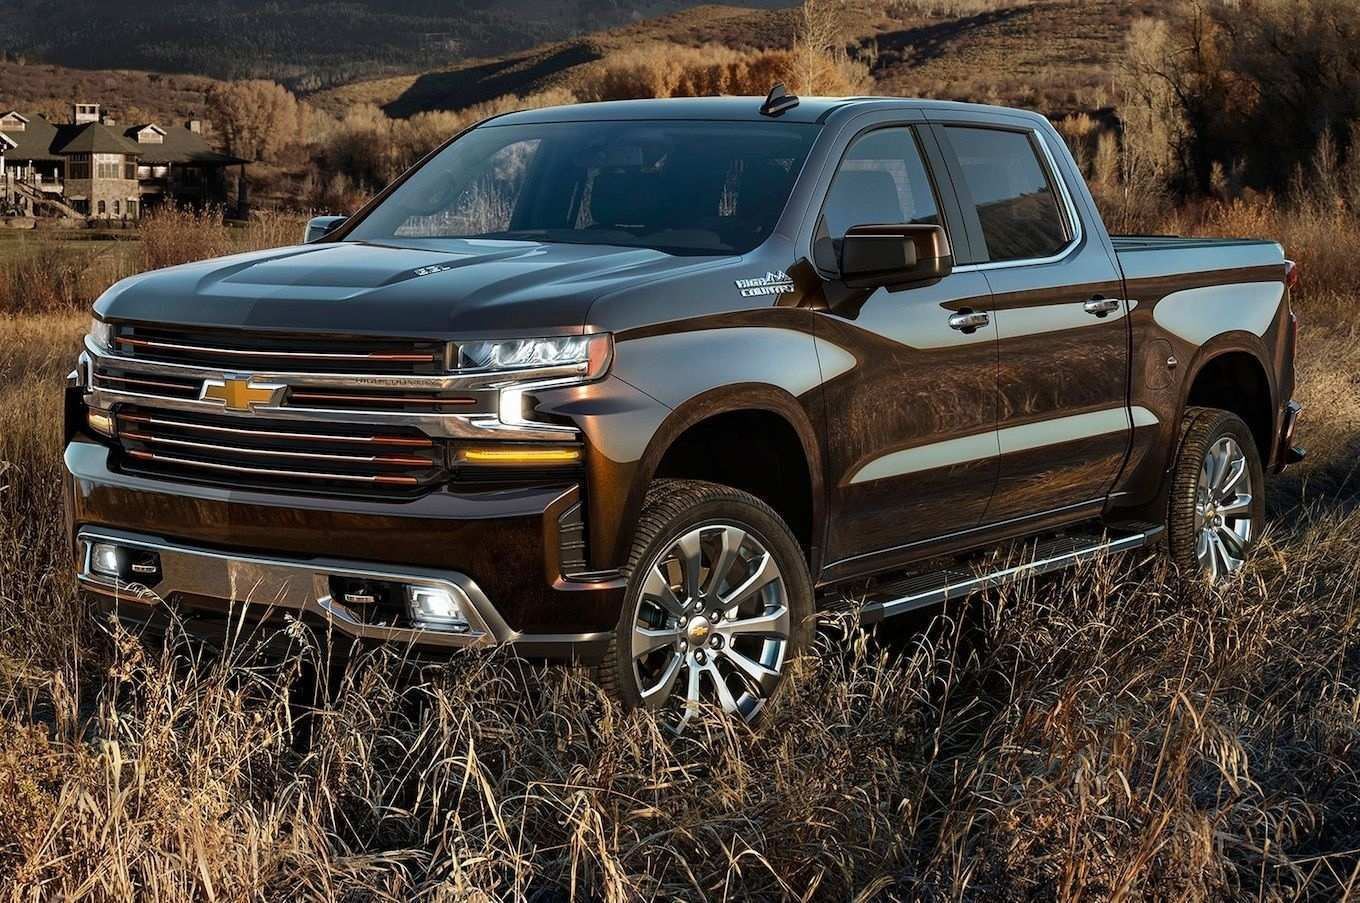 55 New 2019 Chevy Avalanche Price And Review